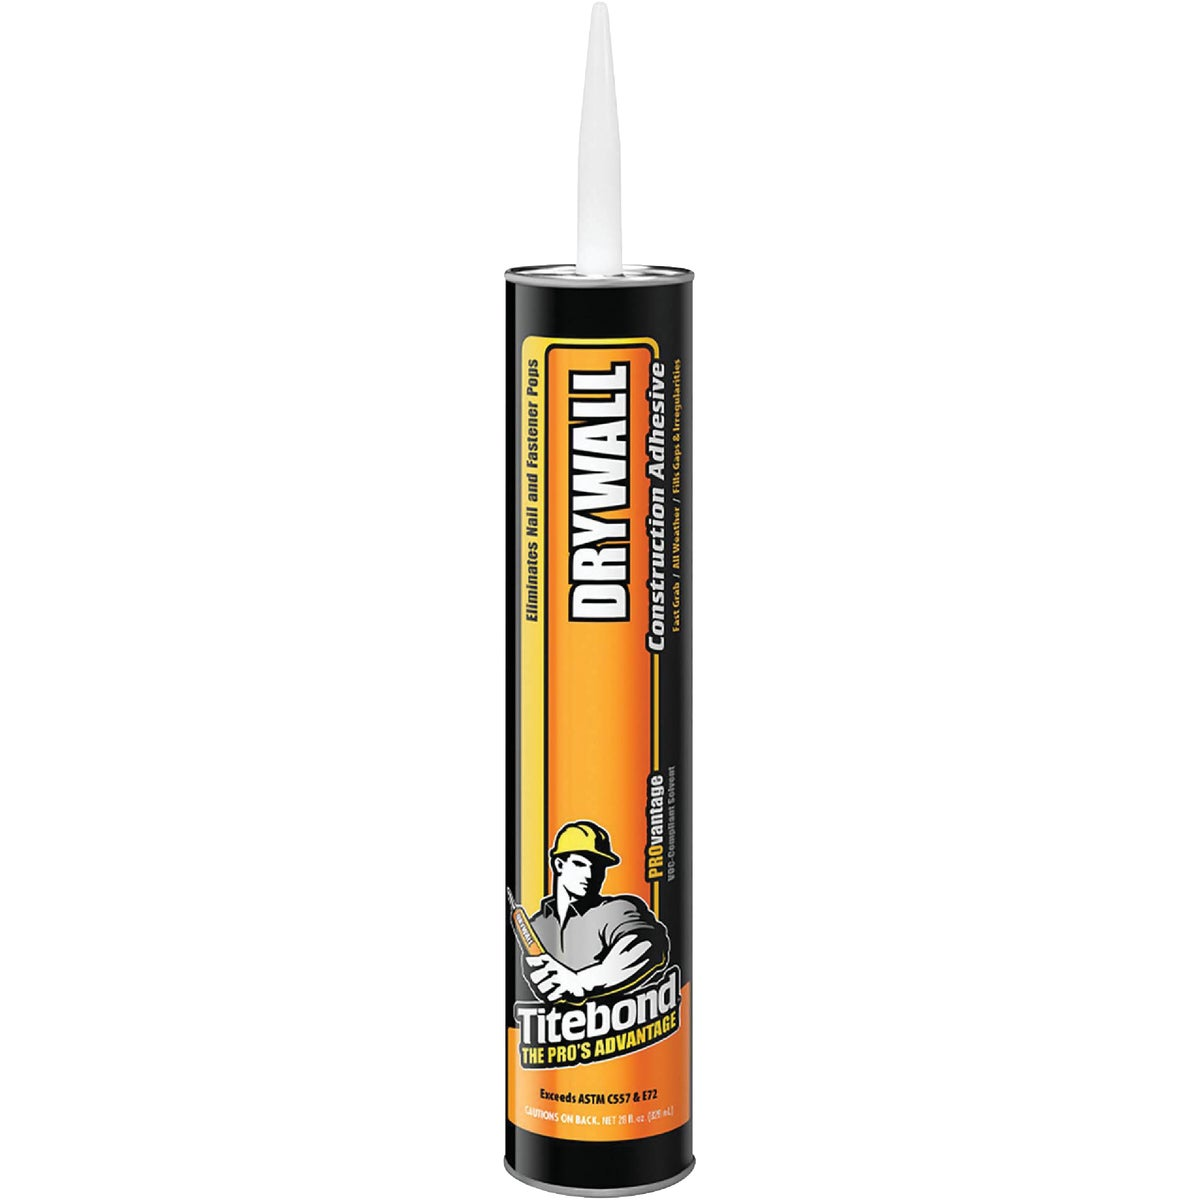 PRO-V HD DRYWLL ADHESIVE - 5342 by Franklin Interl